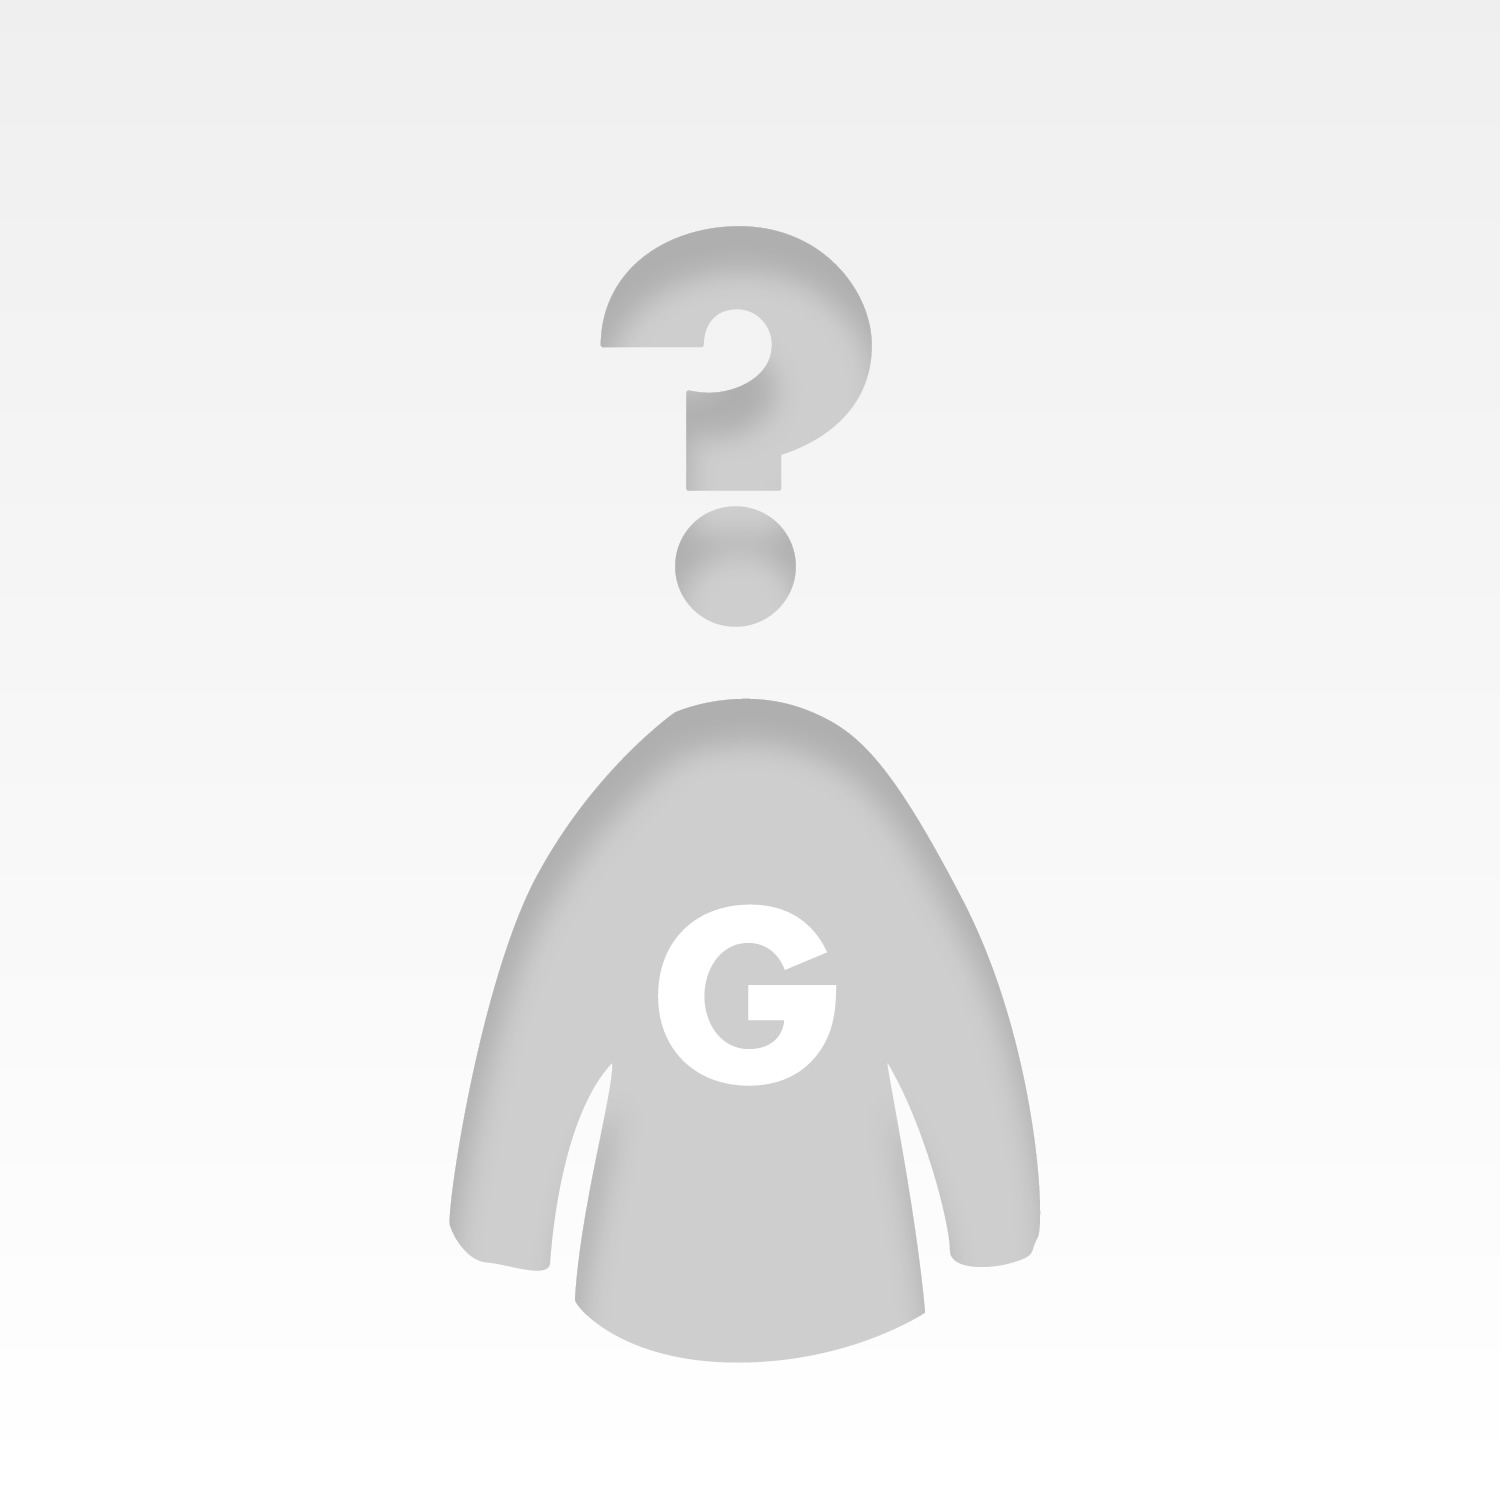 gdawg09\'s avatar